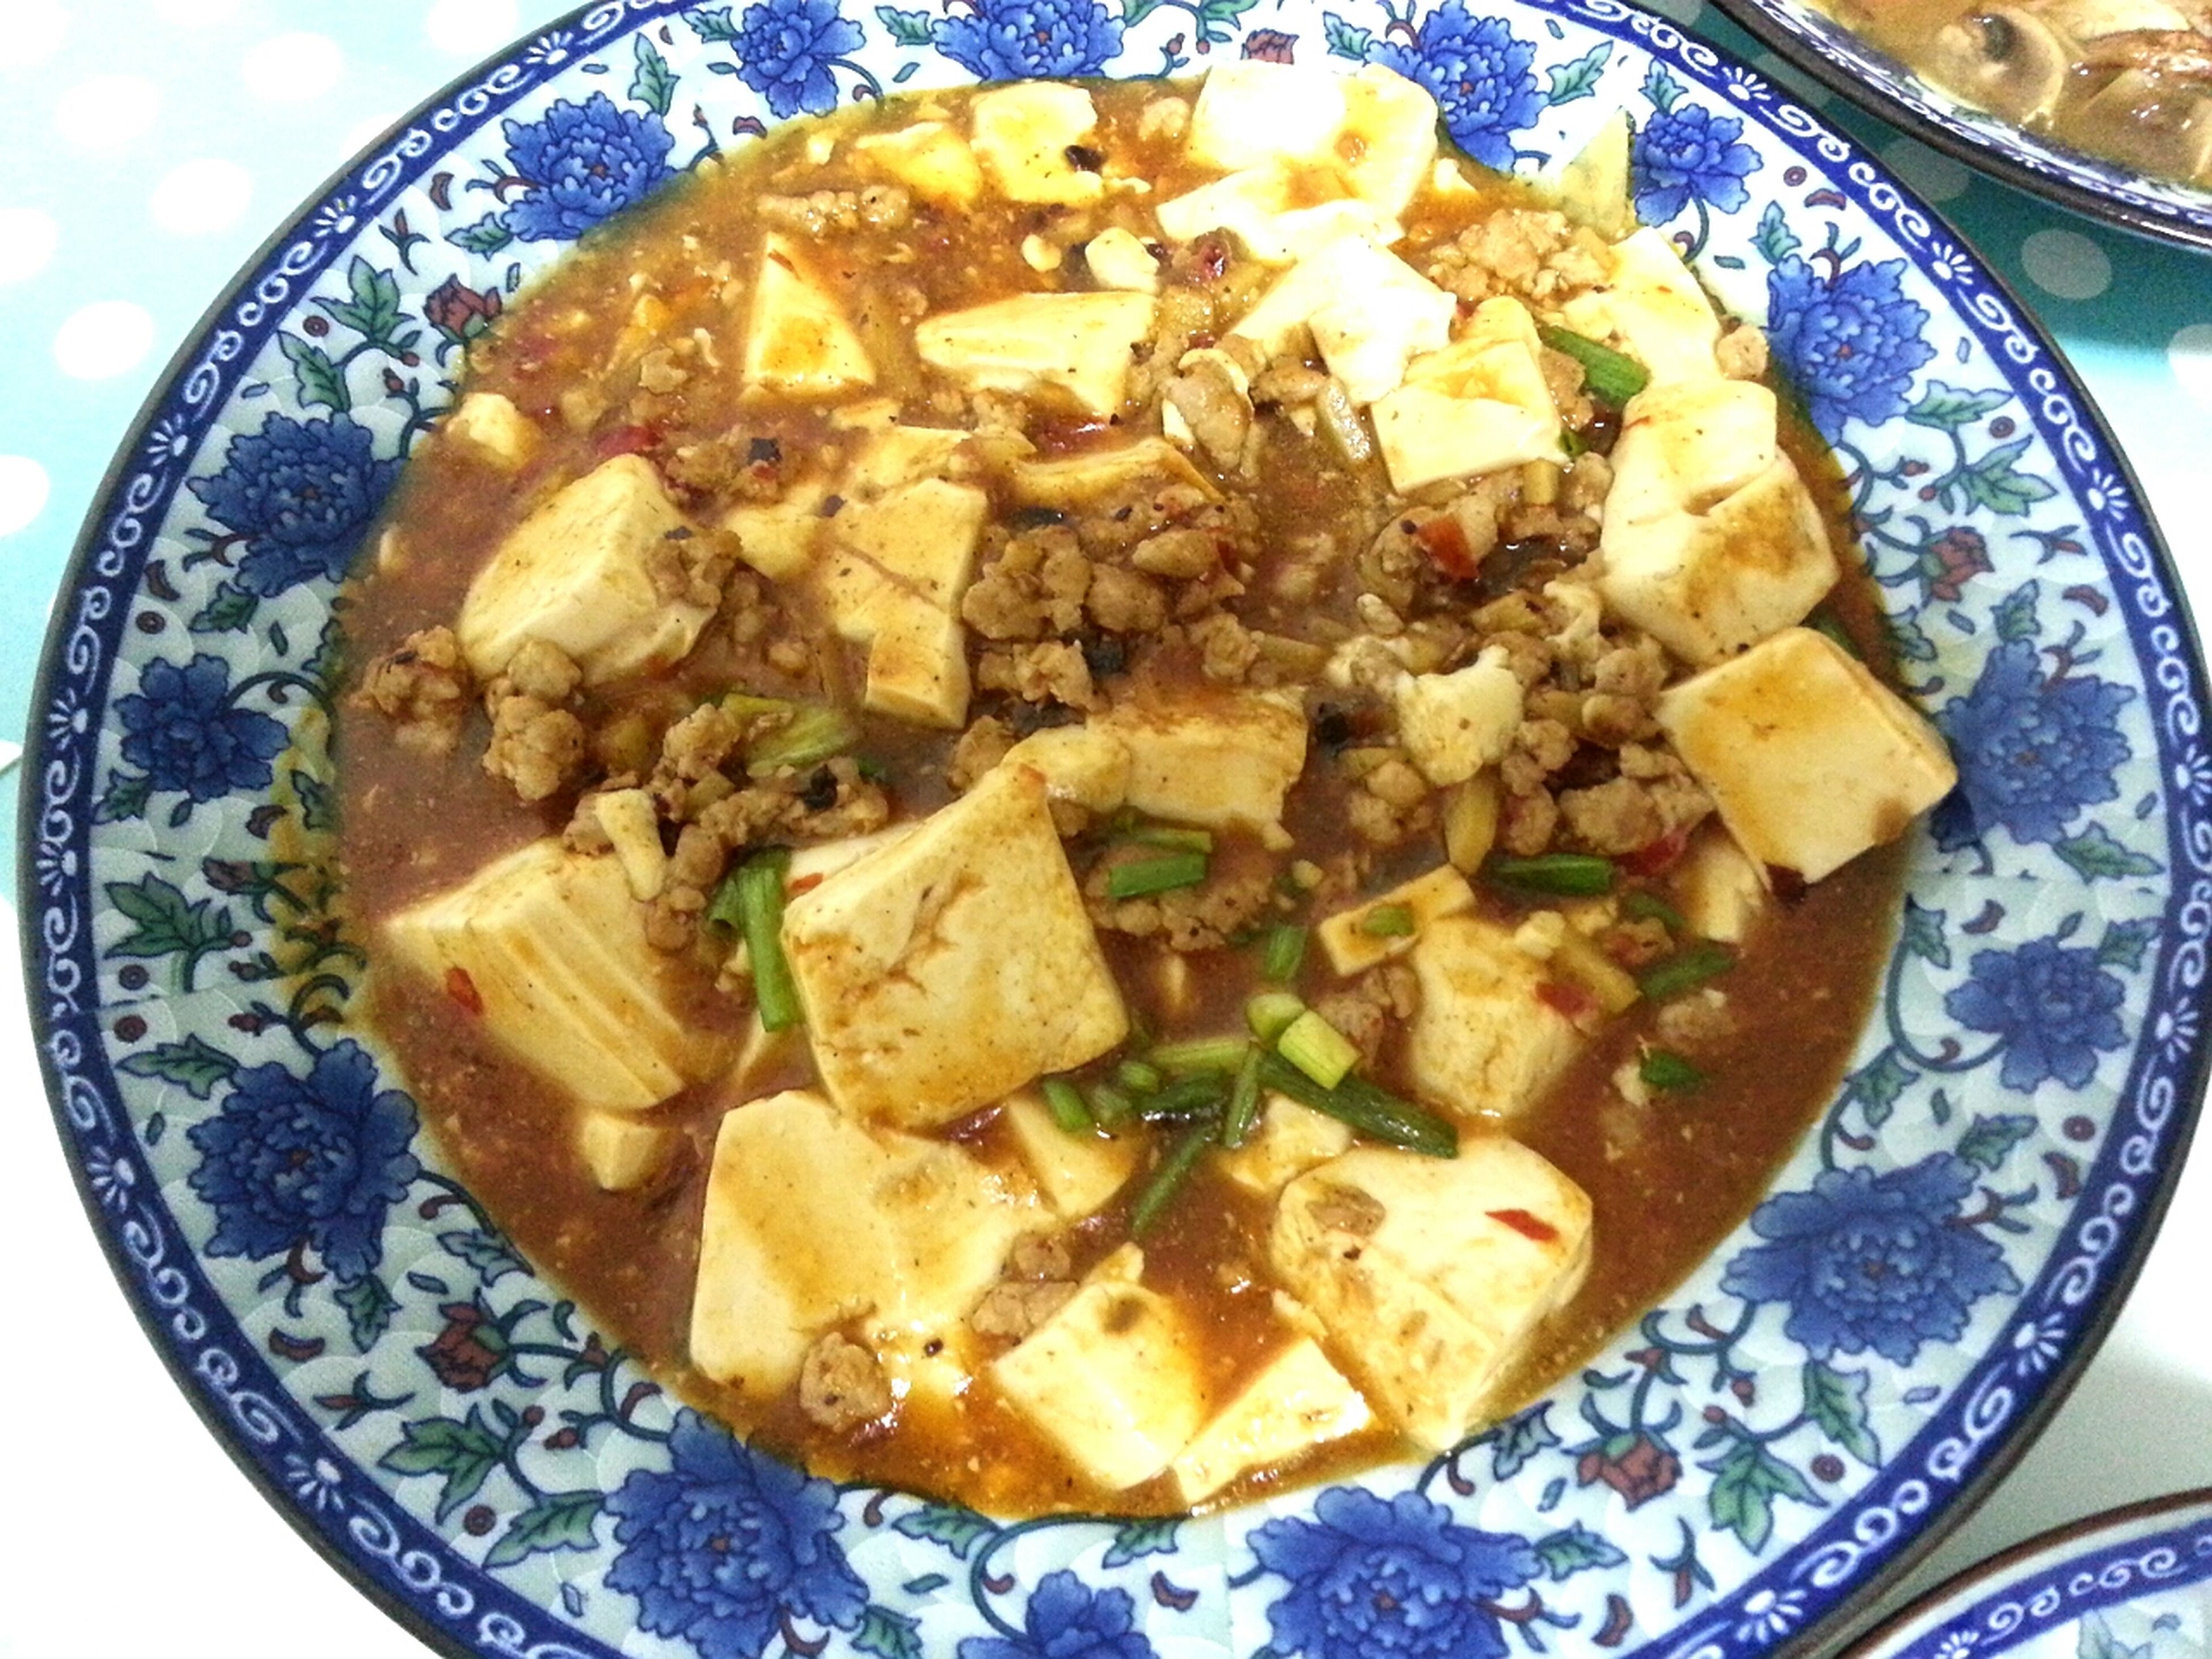 mapo tofu ♥ first dish that I cook in my life XD too spicy.... Food Minced Pork Cooking Tofu